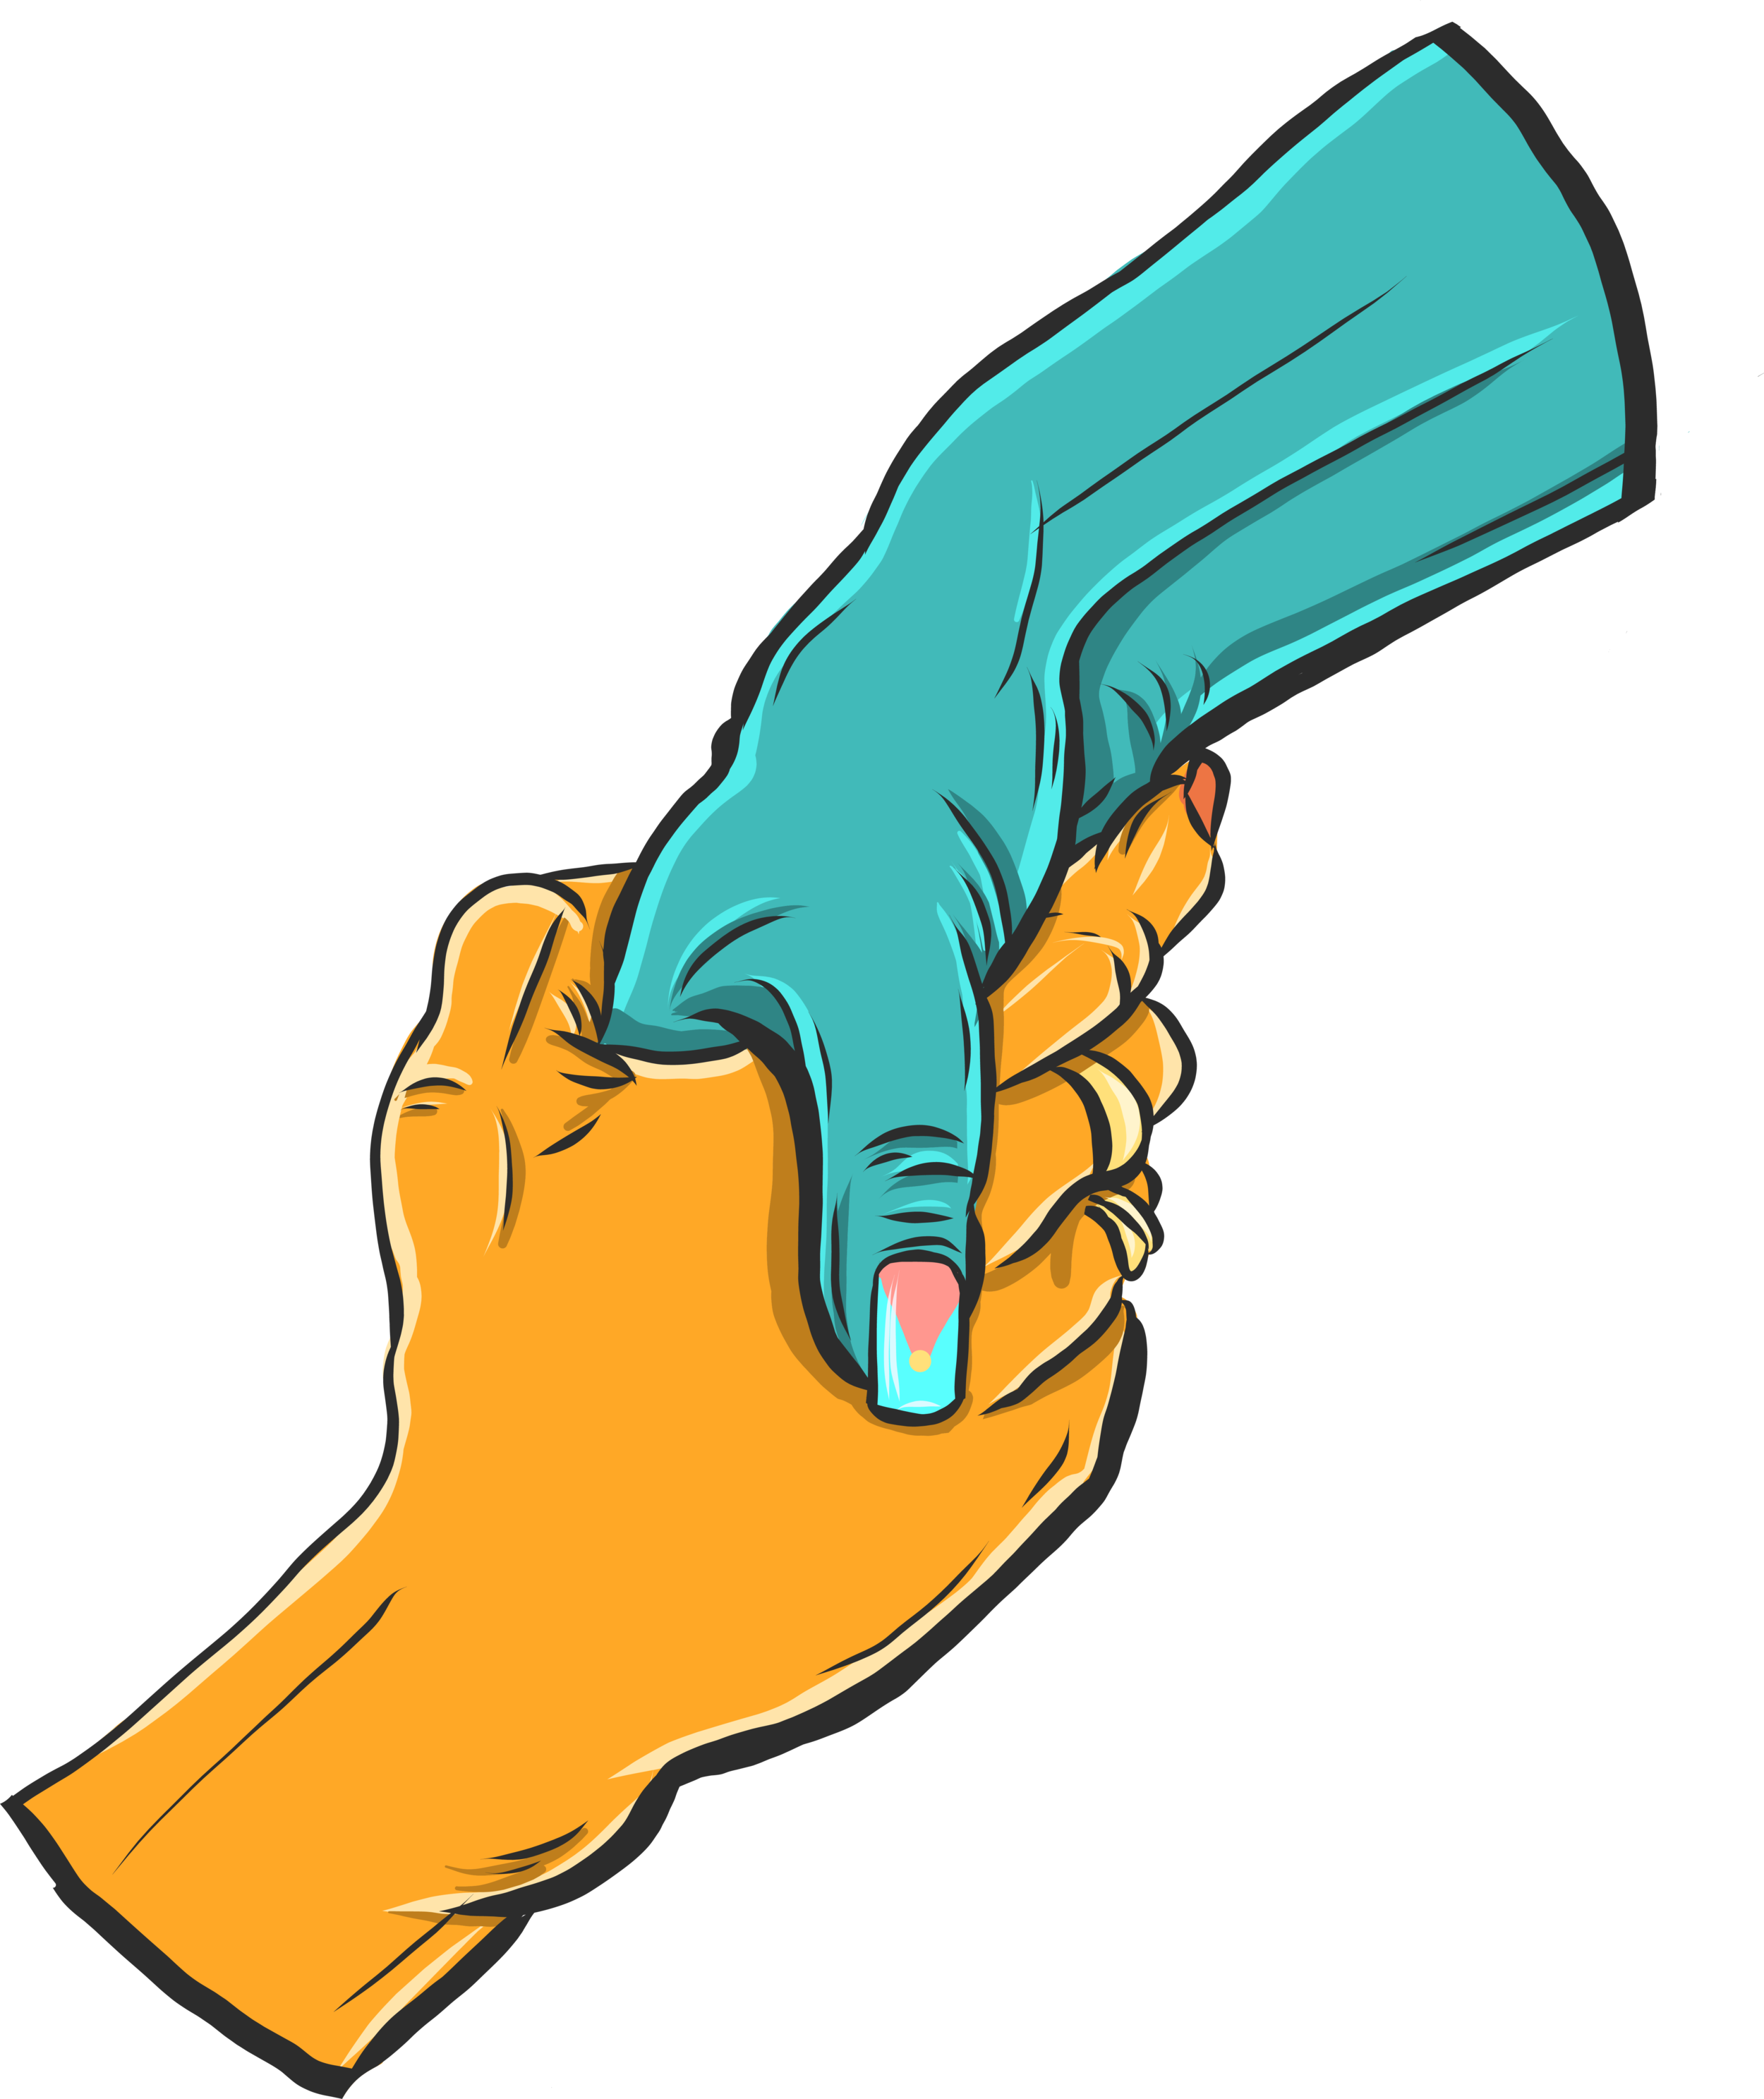 reach out threadless small.png